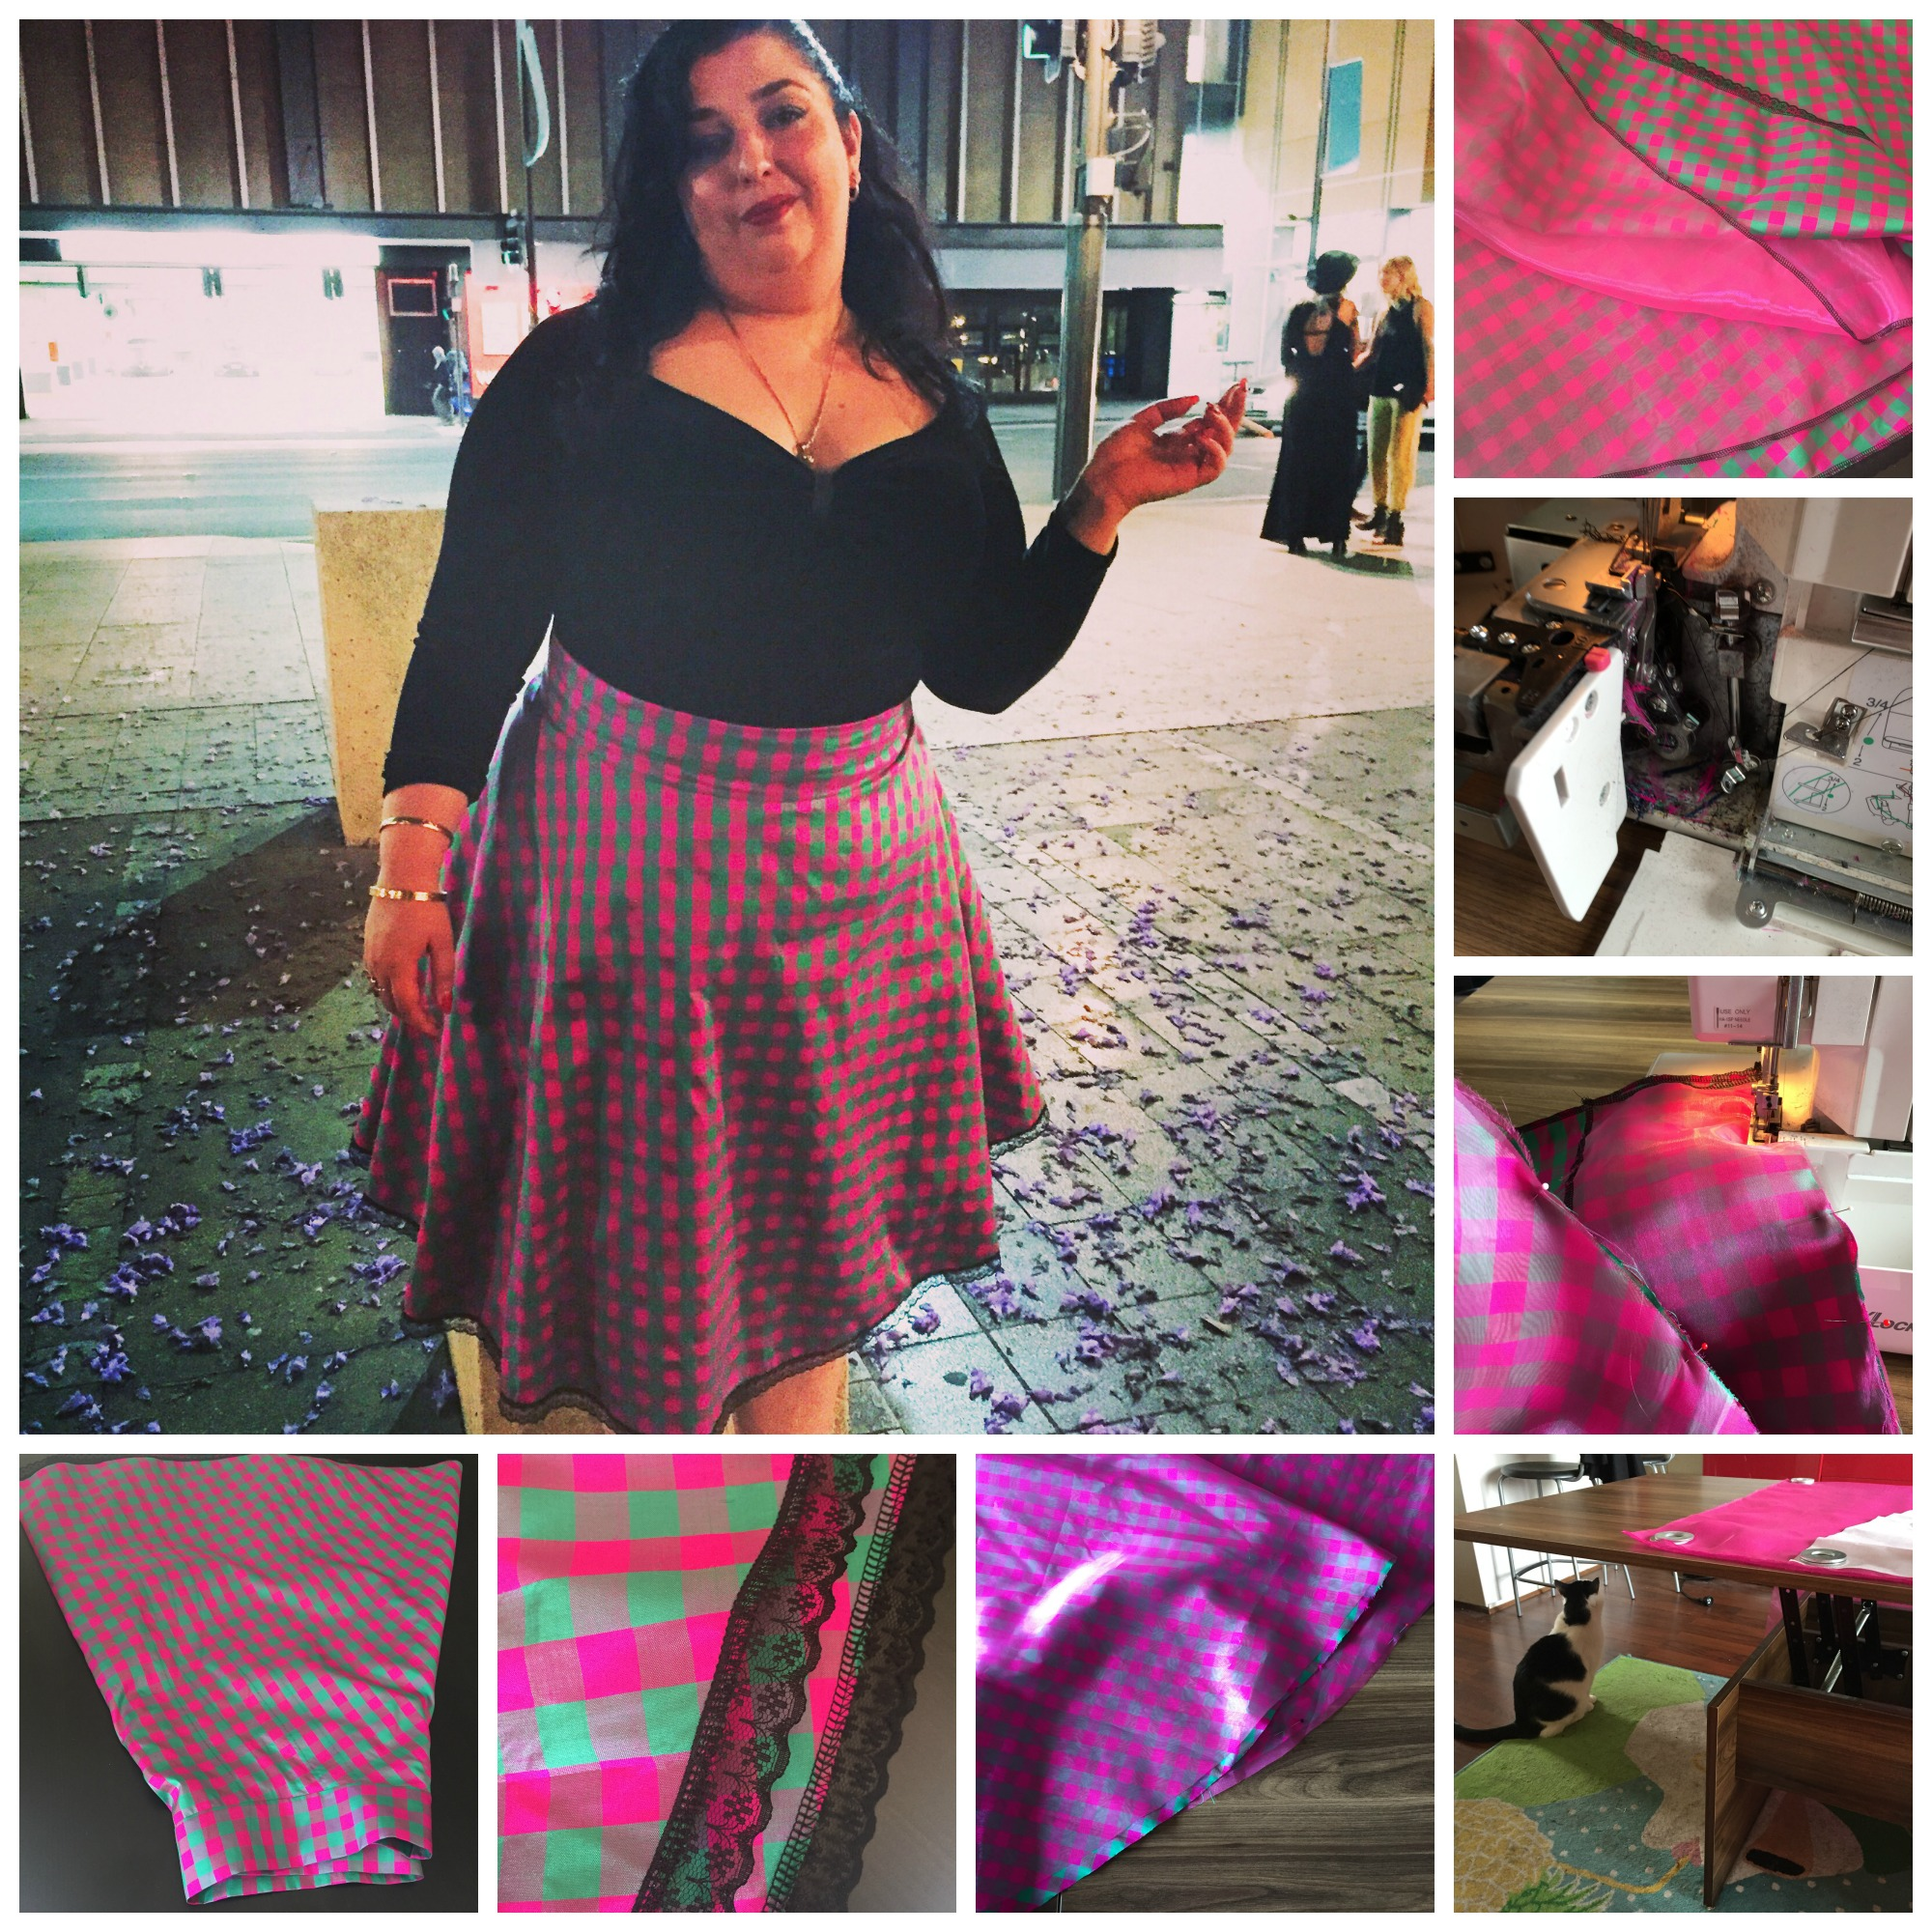 Sew: The Lemonade Skirt {A Cautionary Tale of Sewing with Cats & Some Sewing Drama}